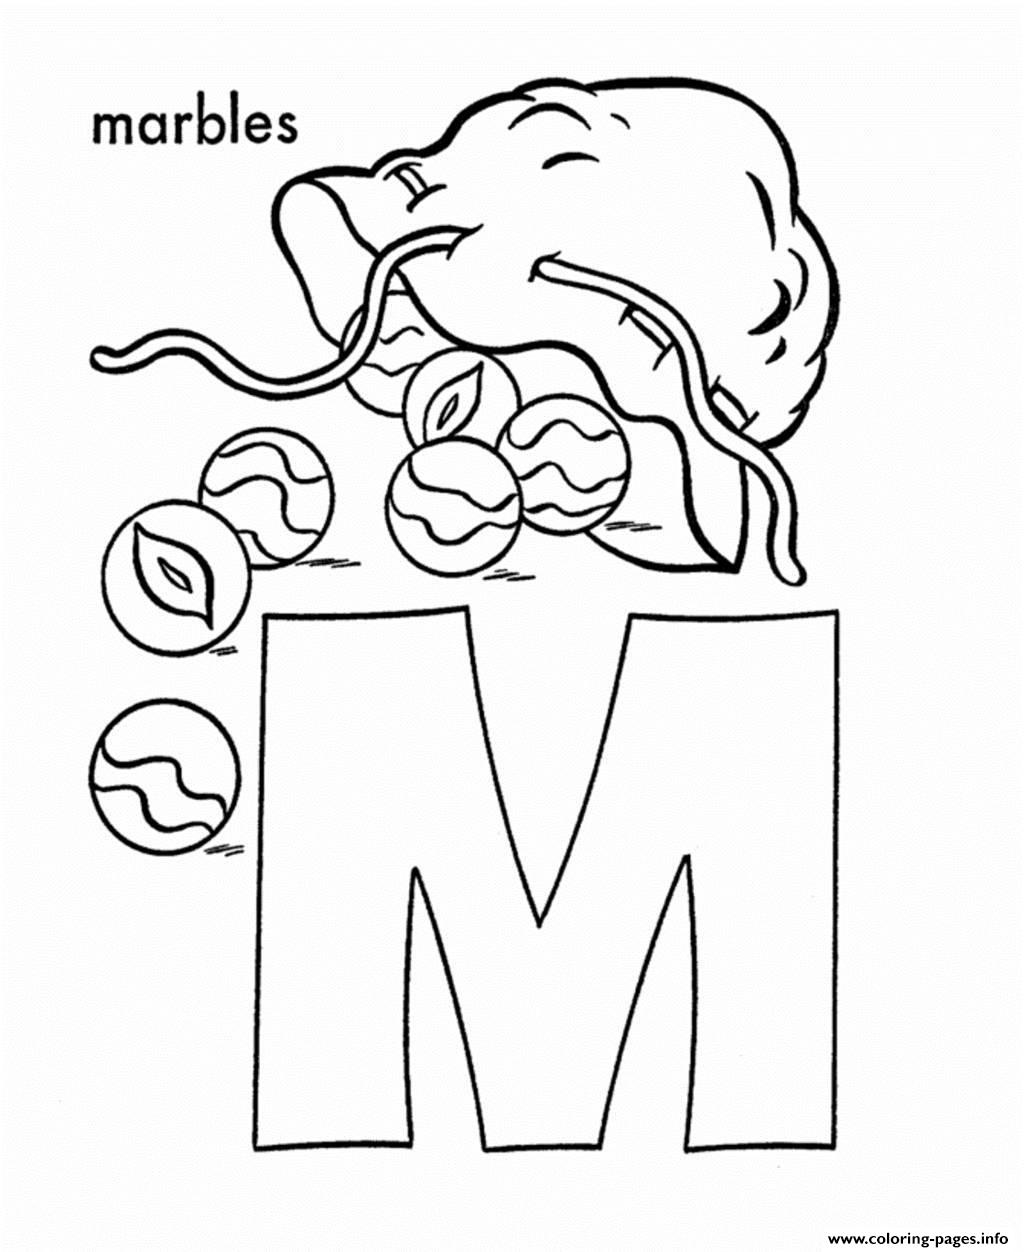 Cartoon Colored Marbles : Free alphabet s m for marbles b coloring pages printable